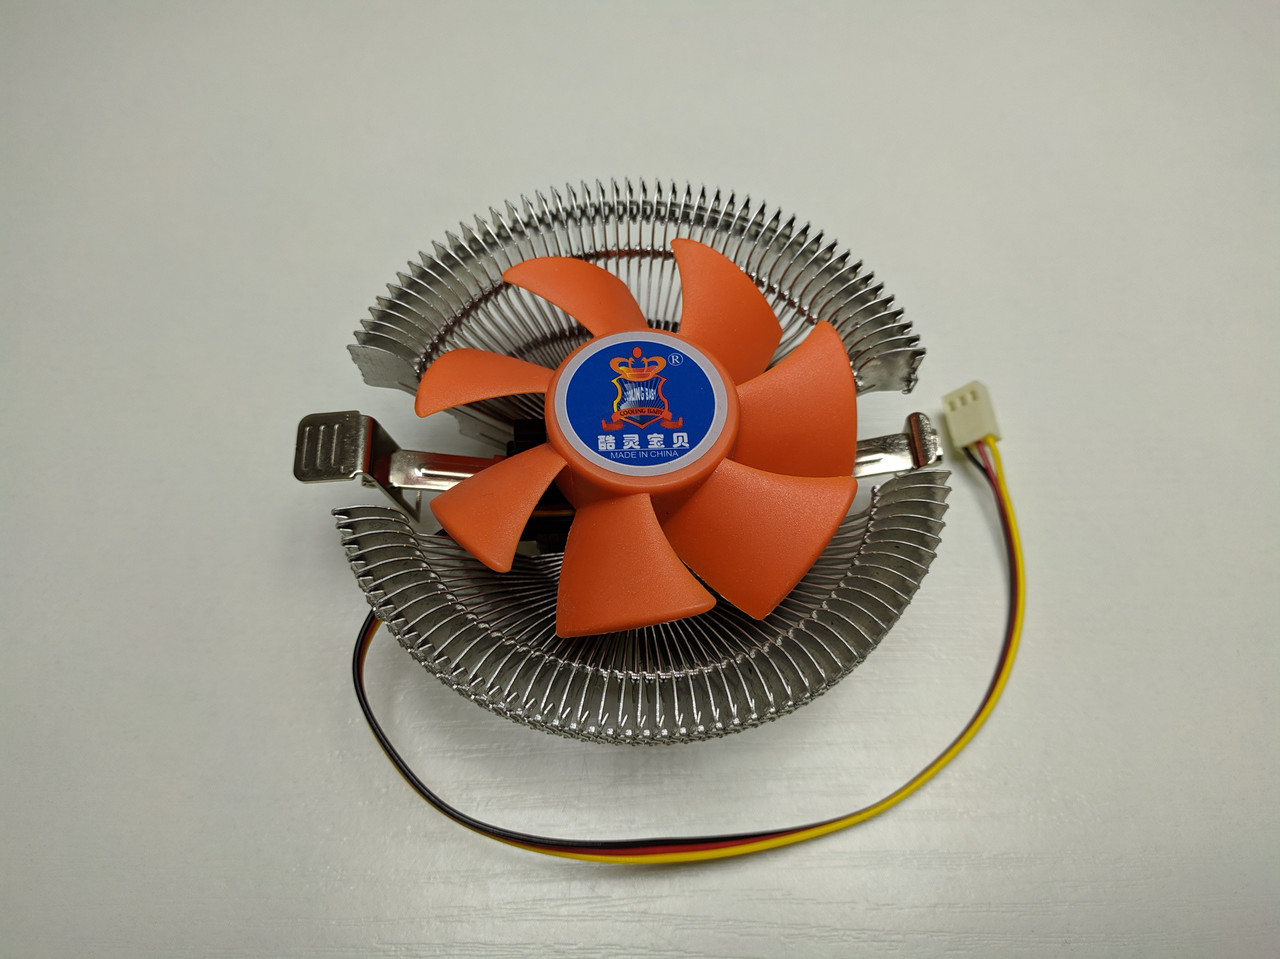 Кулер процессорный CPU Cooling Baby Q8 (775/1156/1155/1150/1151/ FM1/FM2/AM2/AM3/AM4)